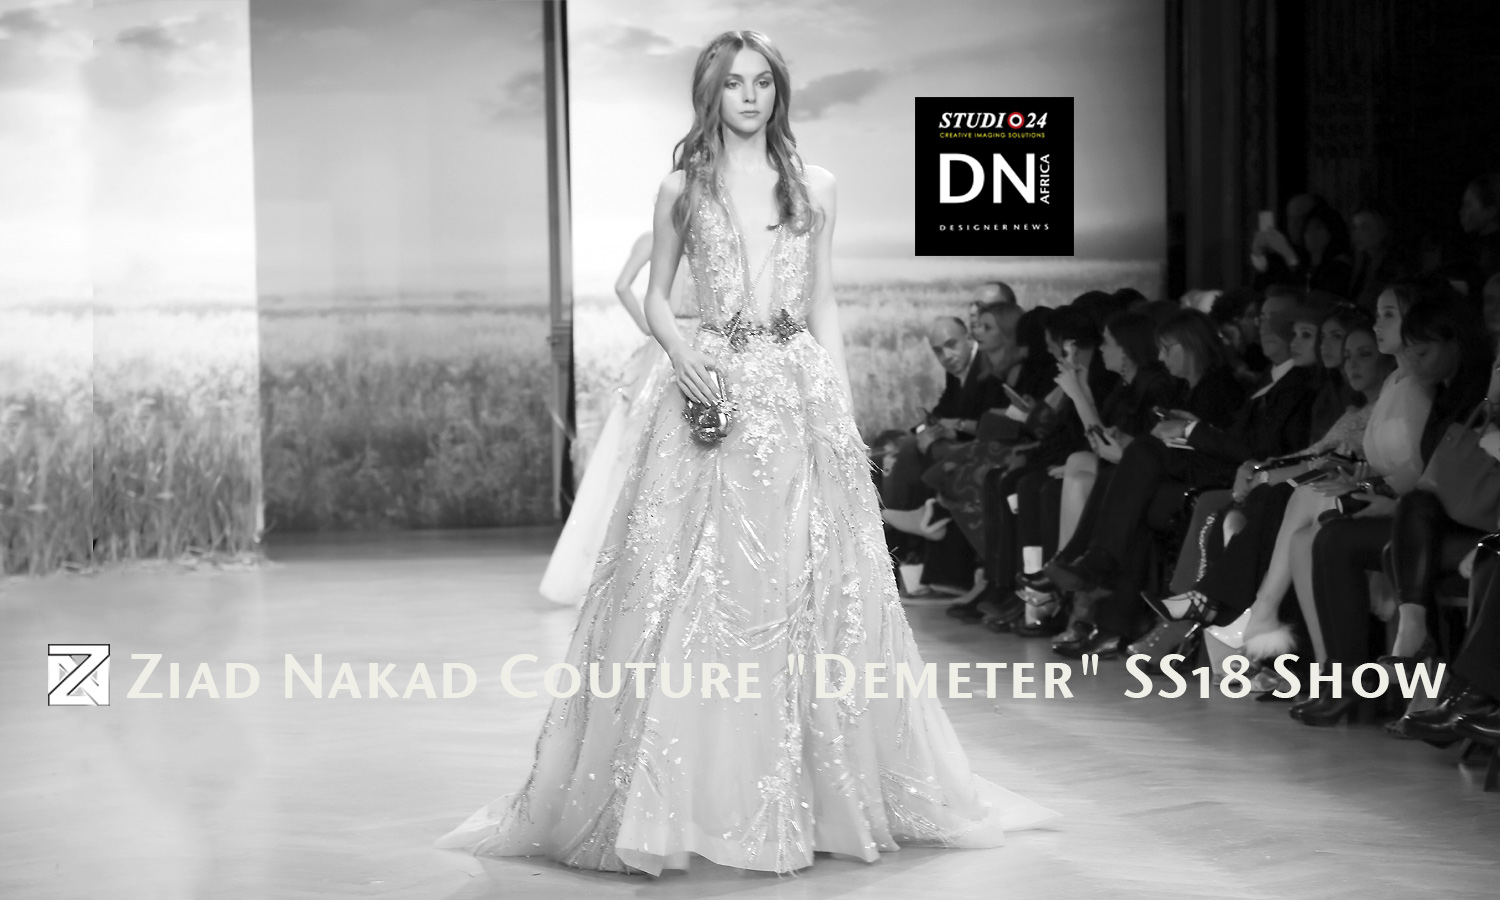 """AFRICAN FASHION STYLE MAGAZINE - Ziad Nakad Couture """"Demeter"""" Spring-summer 2018 Show - the-westin-paris-vendome - Media Partner DN MAG, DN AFRICA-STUDIO 24 NIGERIA - STUDIO 24 INTERNATIONAL - Mephistopheles Productions"""